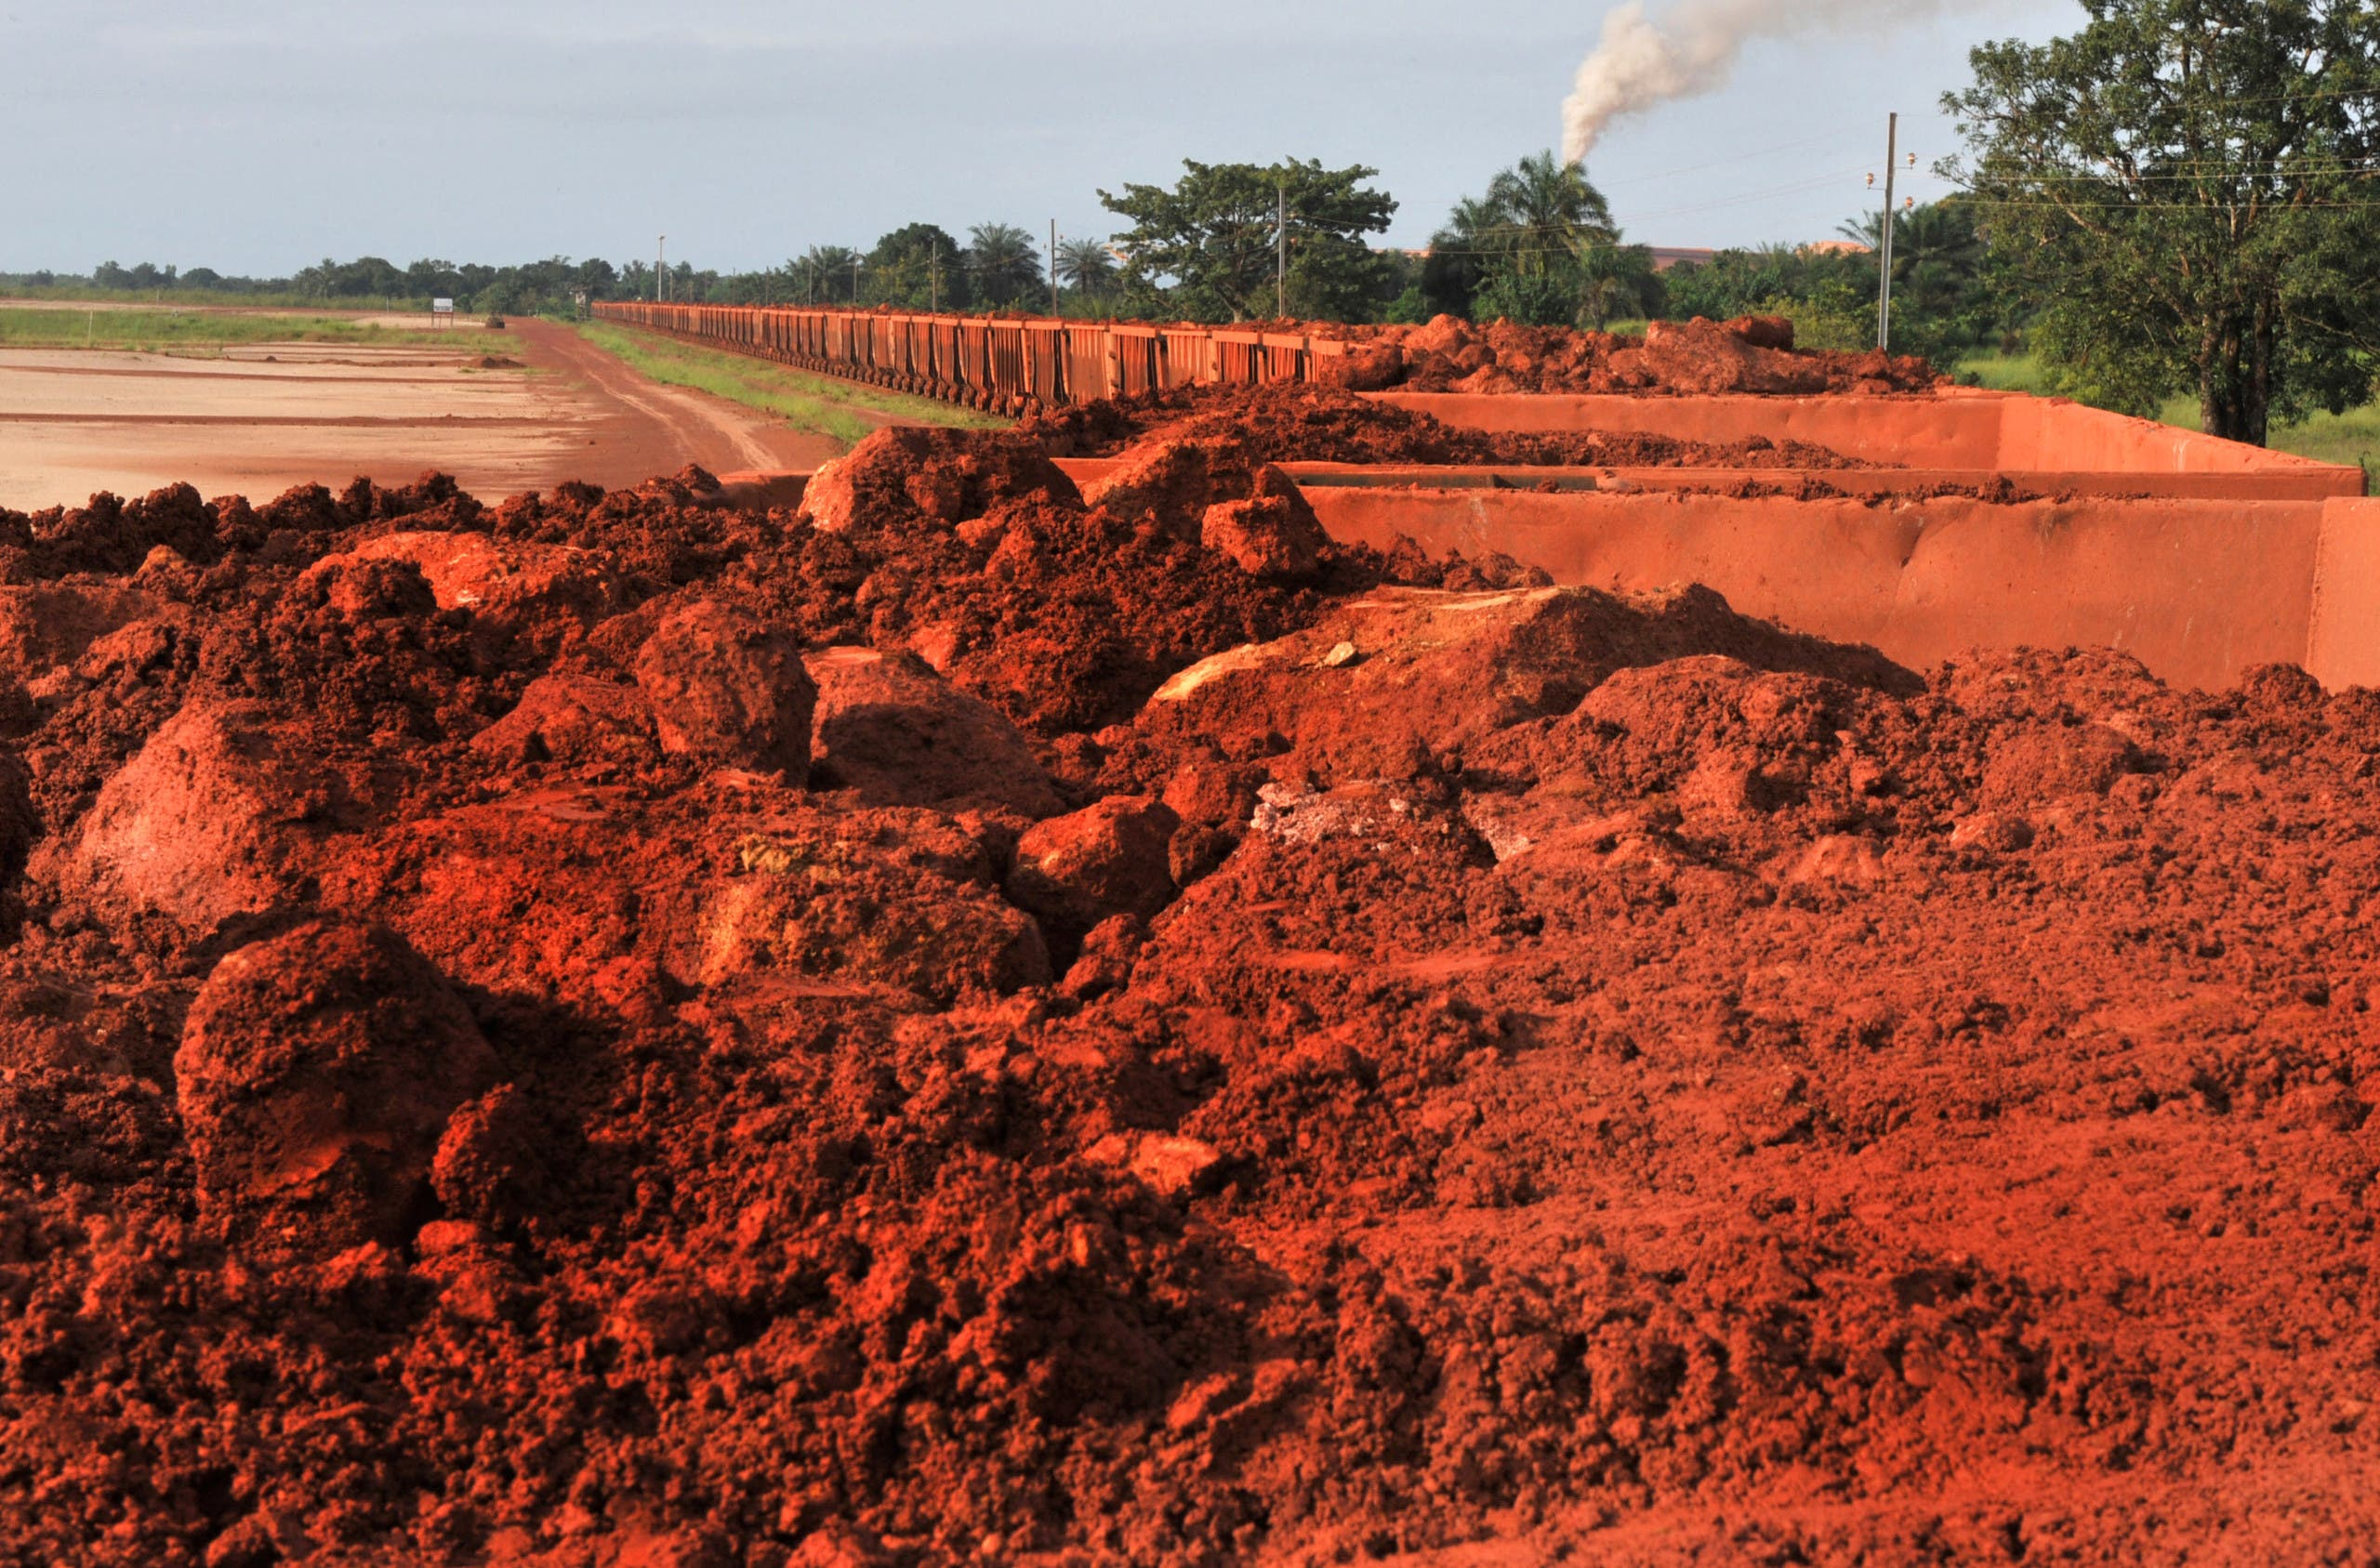 A train loaded with bauxite arrives at the bauxite factory of Guinea's largest mining firm, Compagnie des Bauxites de Guinee (CBG), at Kamsar, a town north of the capital Conakry, on October 23, 2008. (AFP)